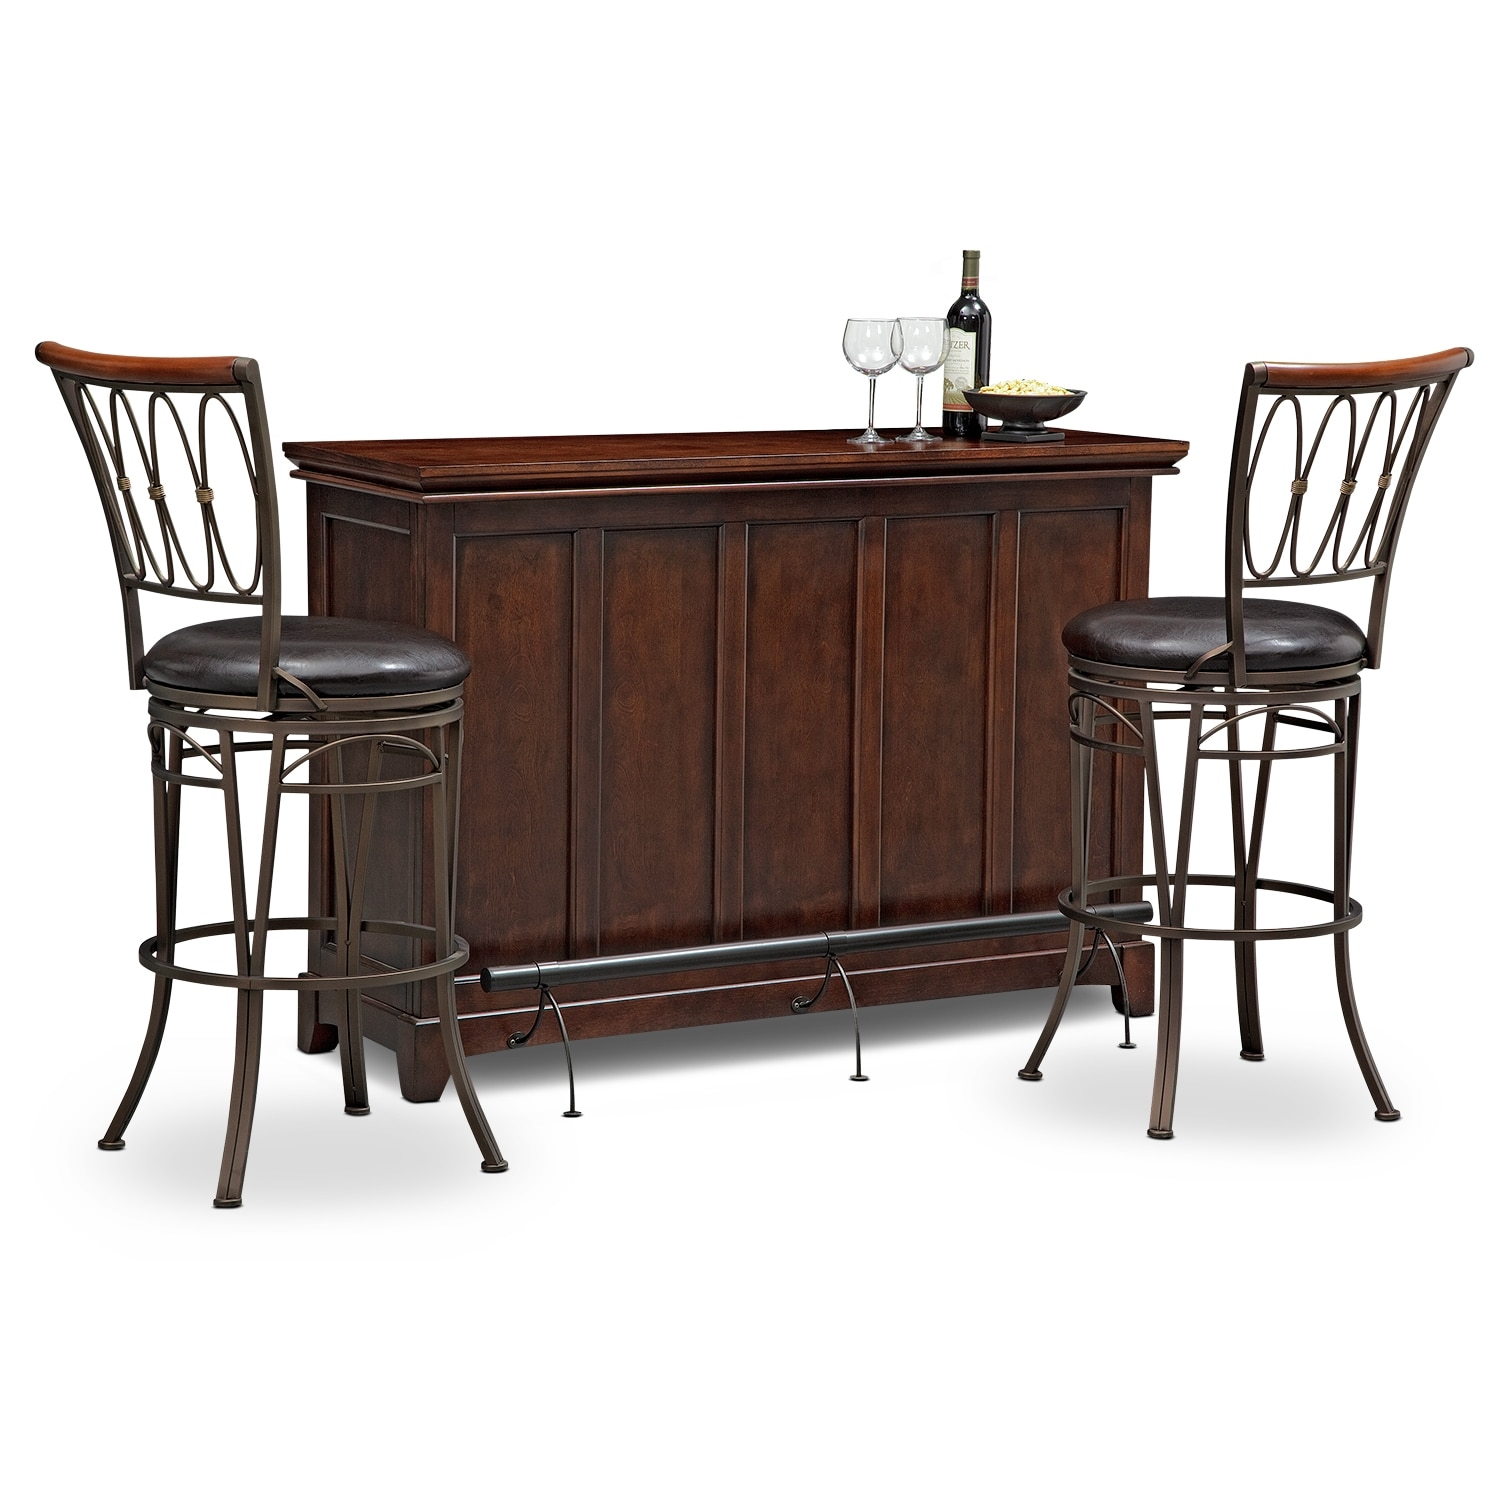 Accent and Occasional Furniture - Carlton Blake 3 Pc. Bar Set